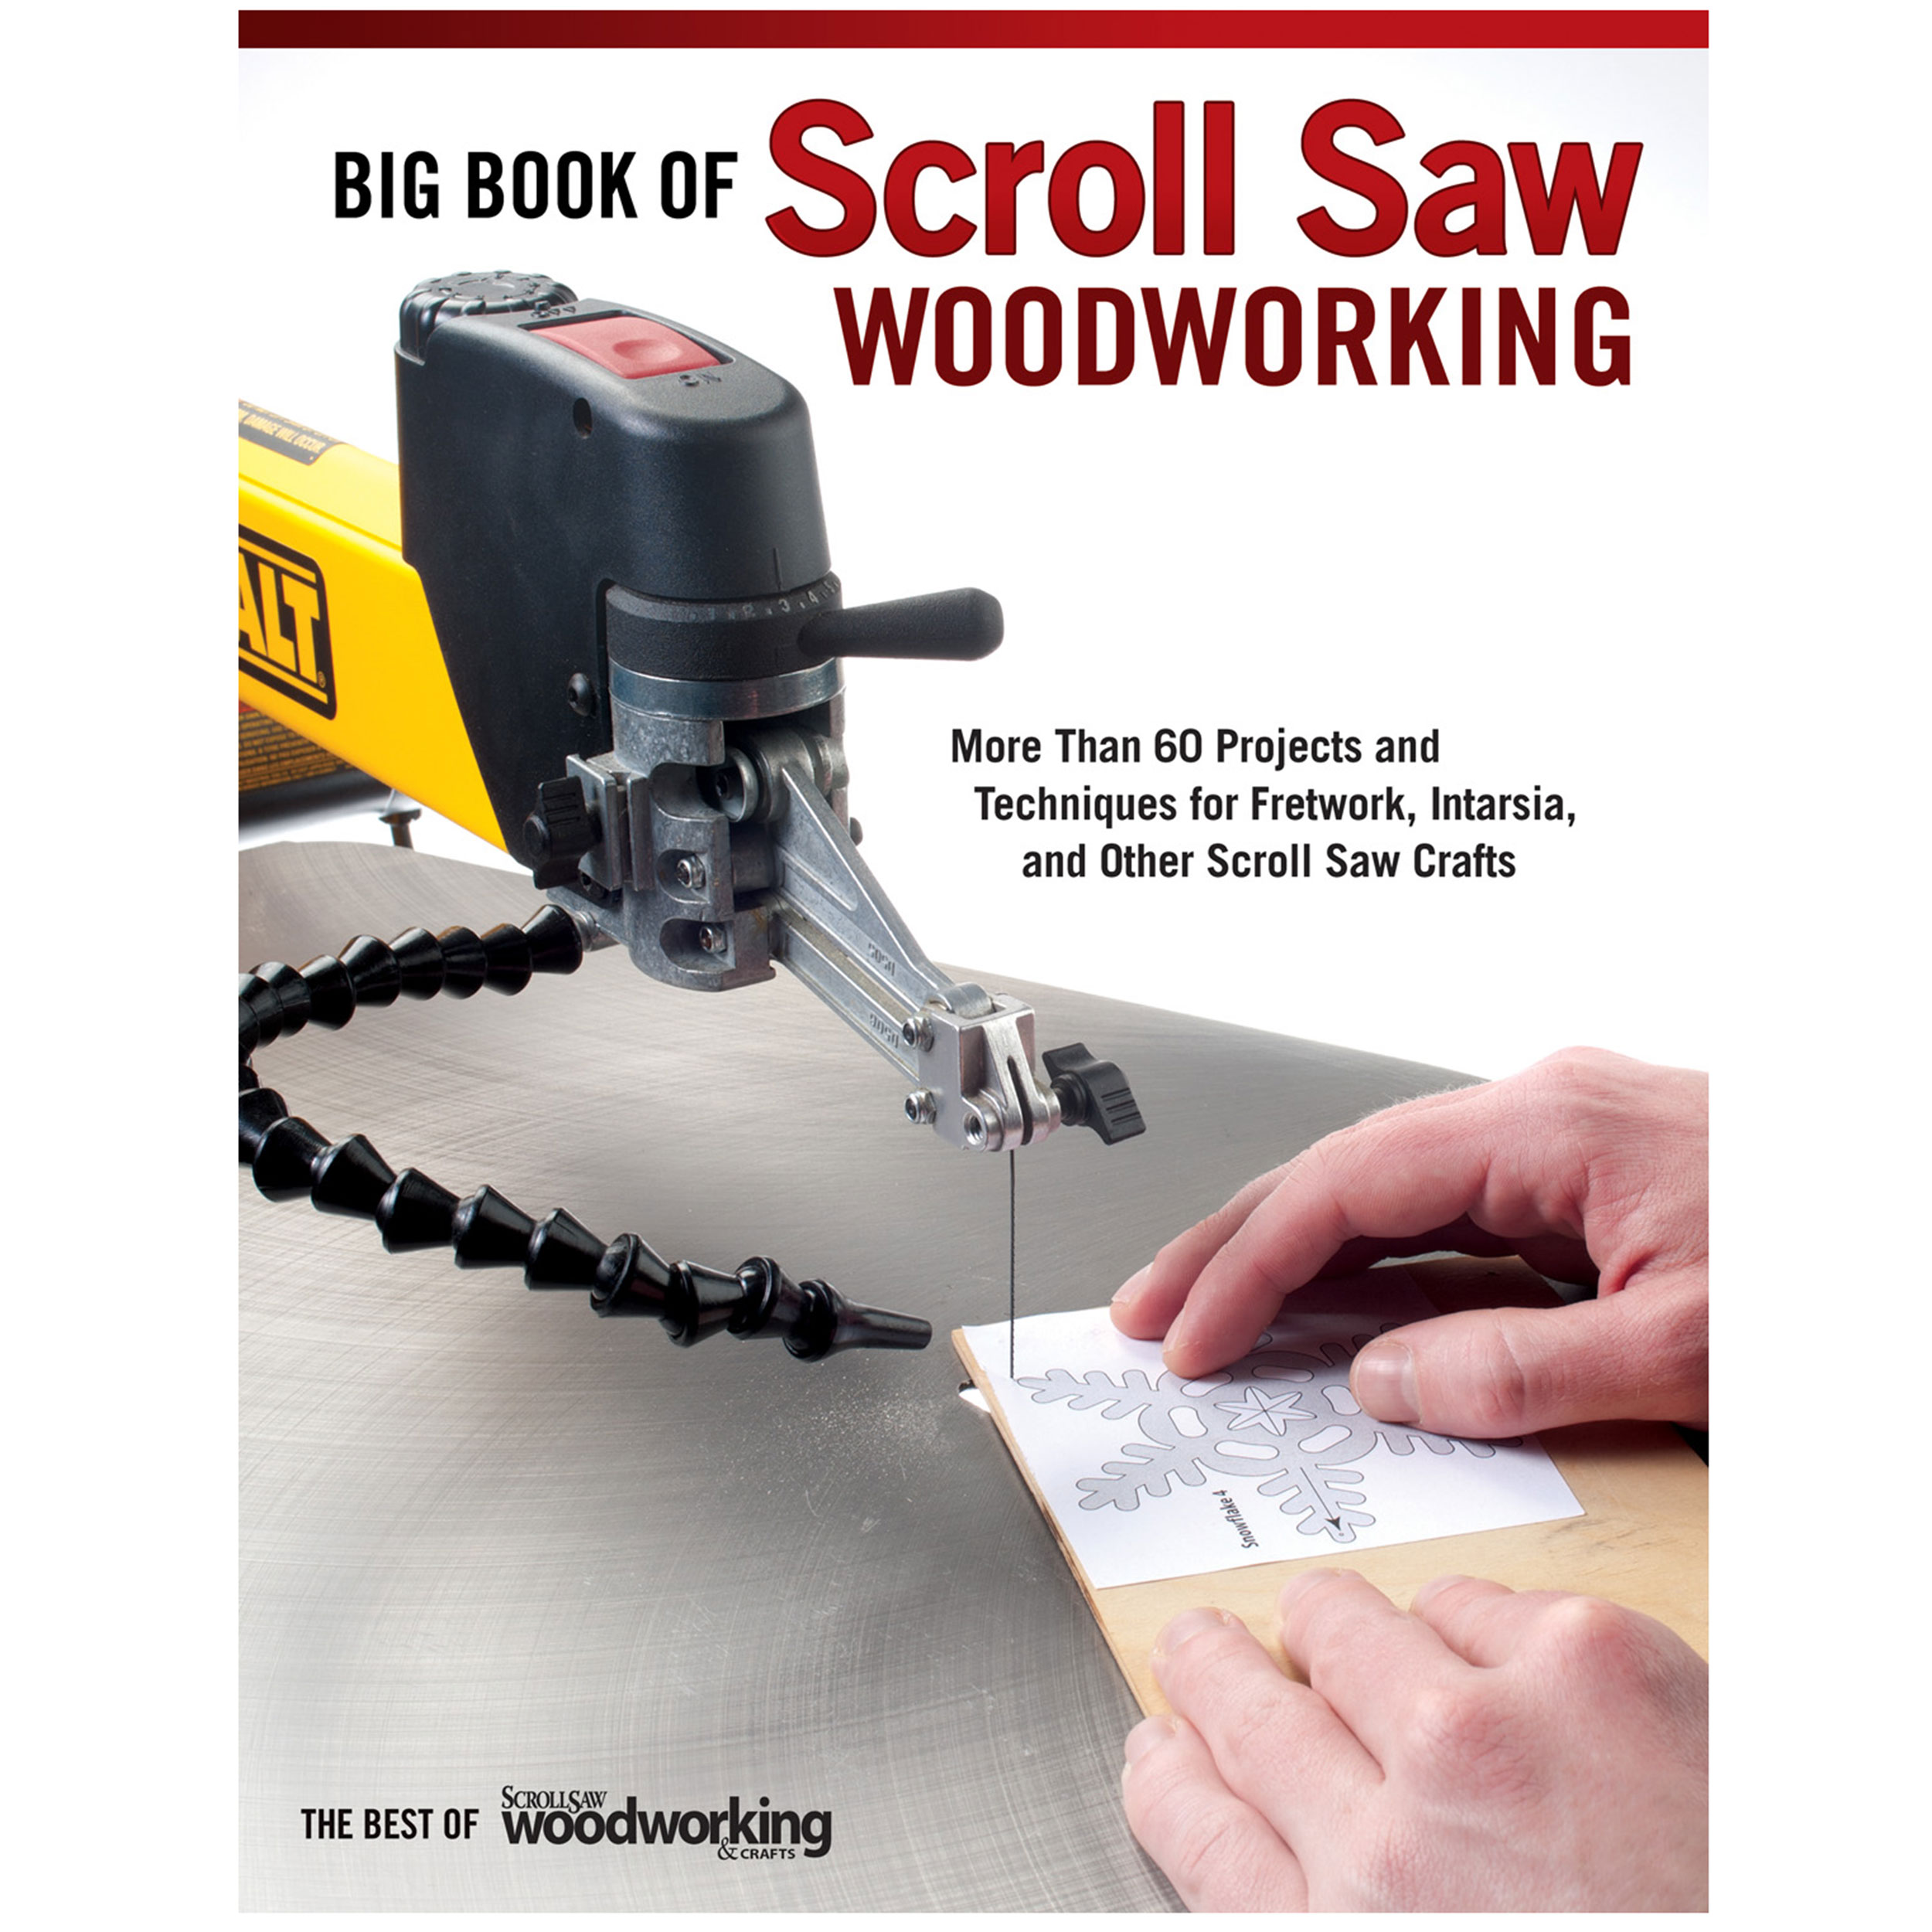 The Big Book of Scroll Saw Woodworking